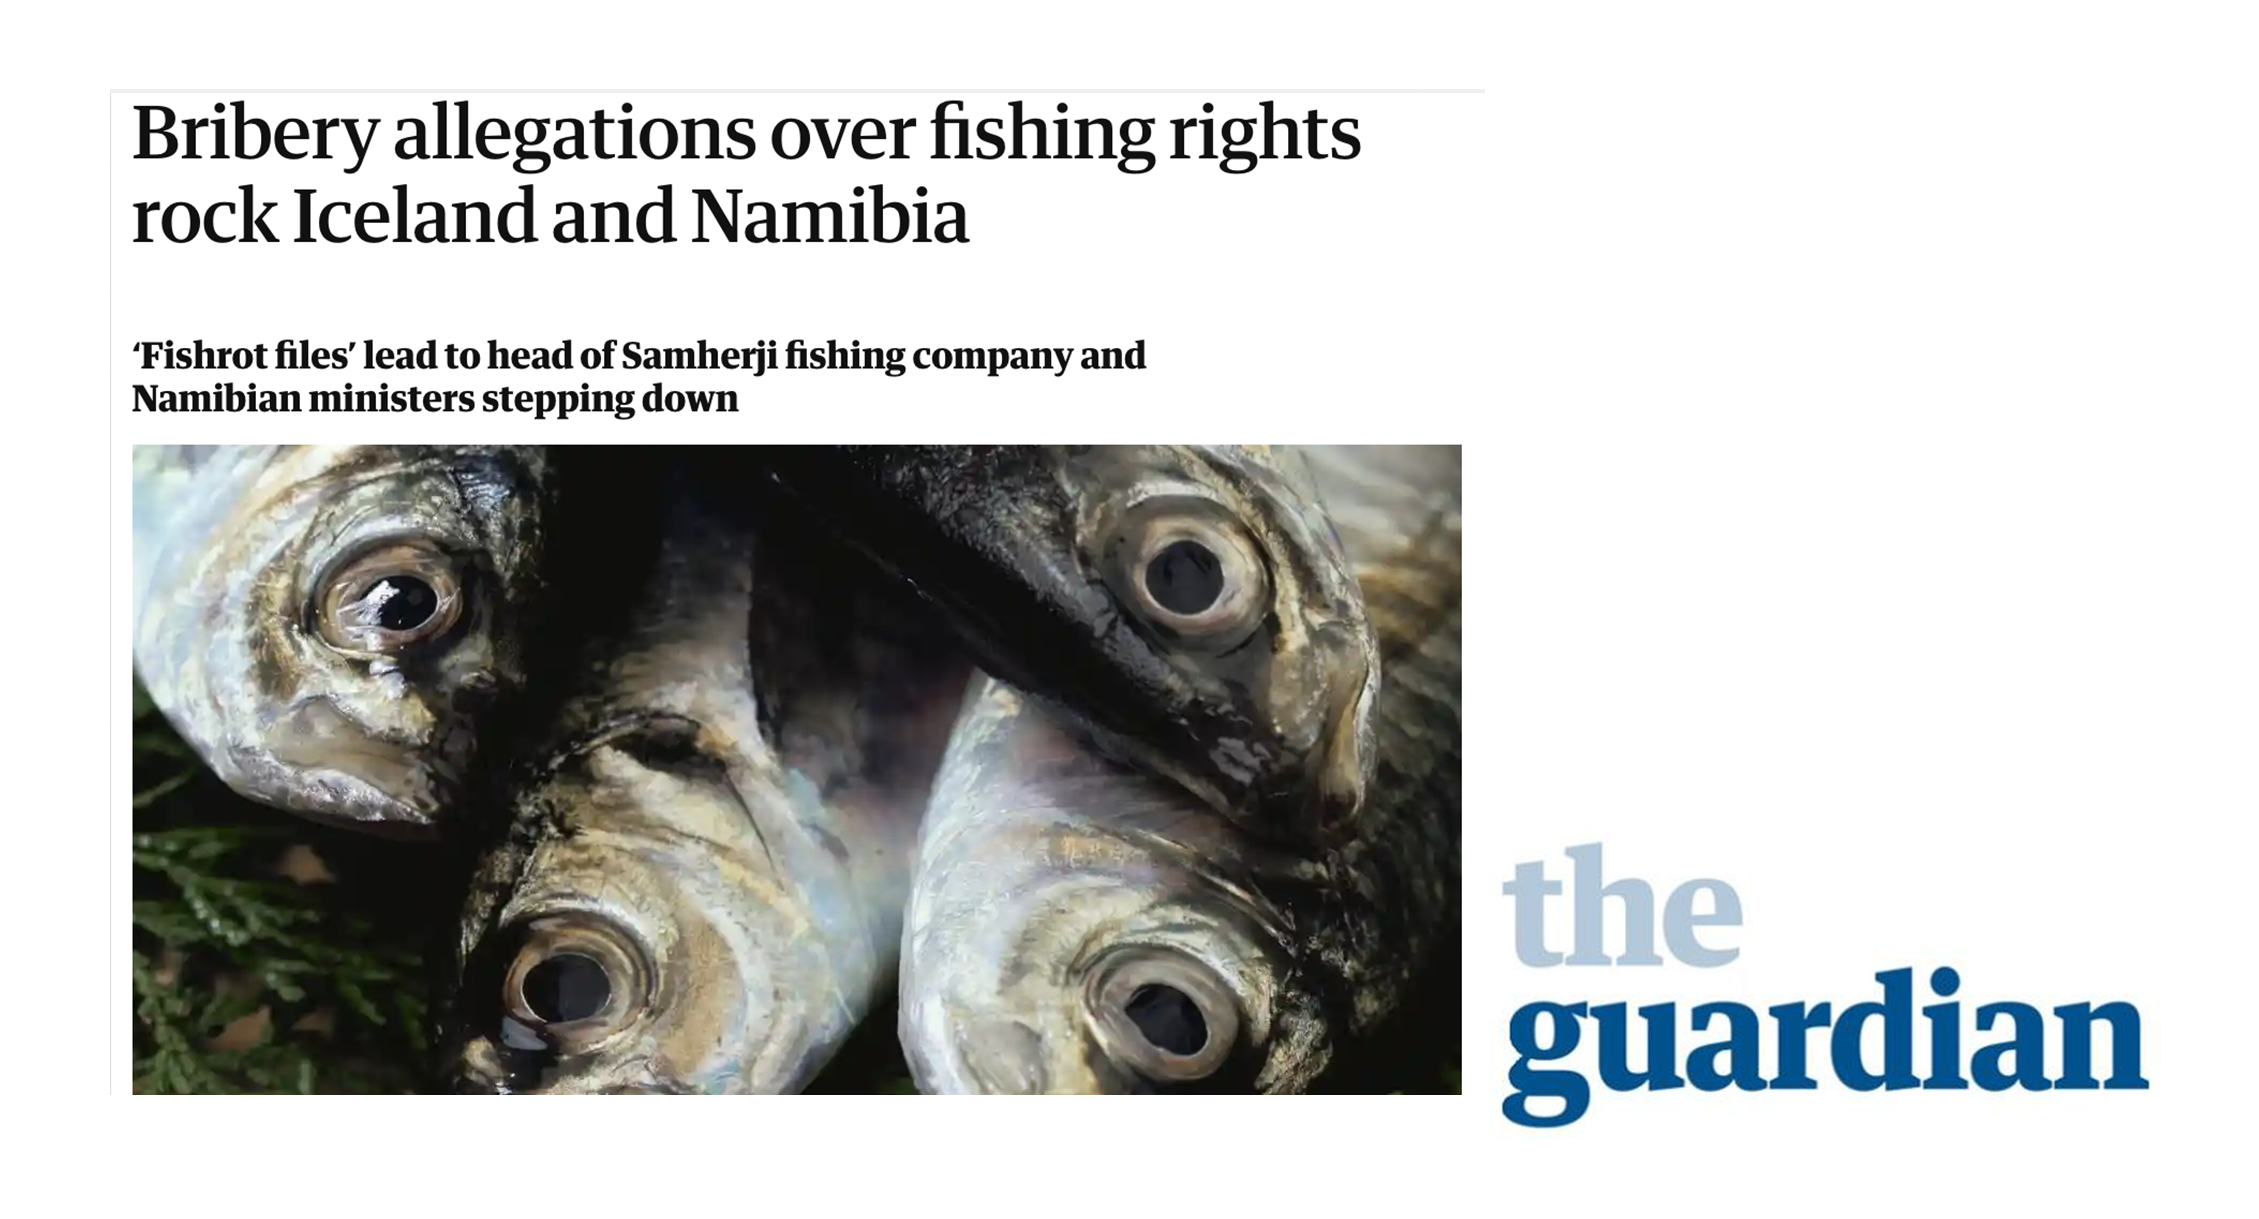 The Guardian: Bribery allegations rock Iceland and Namibia